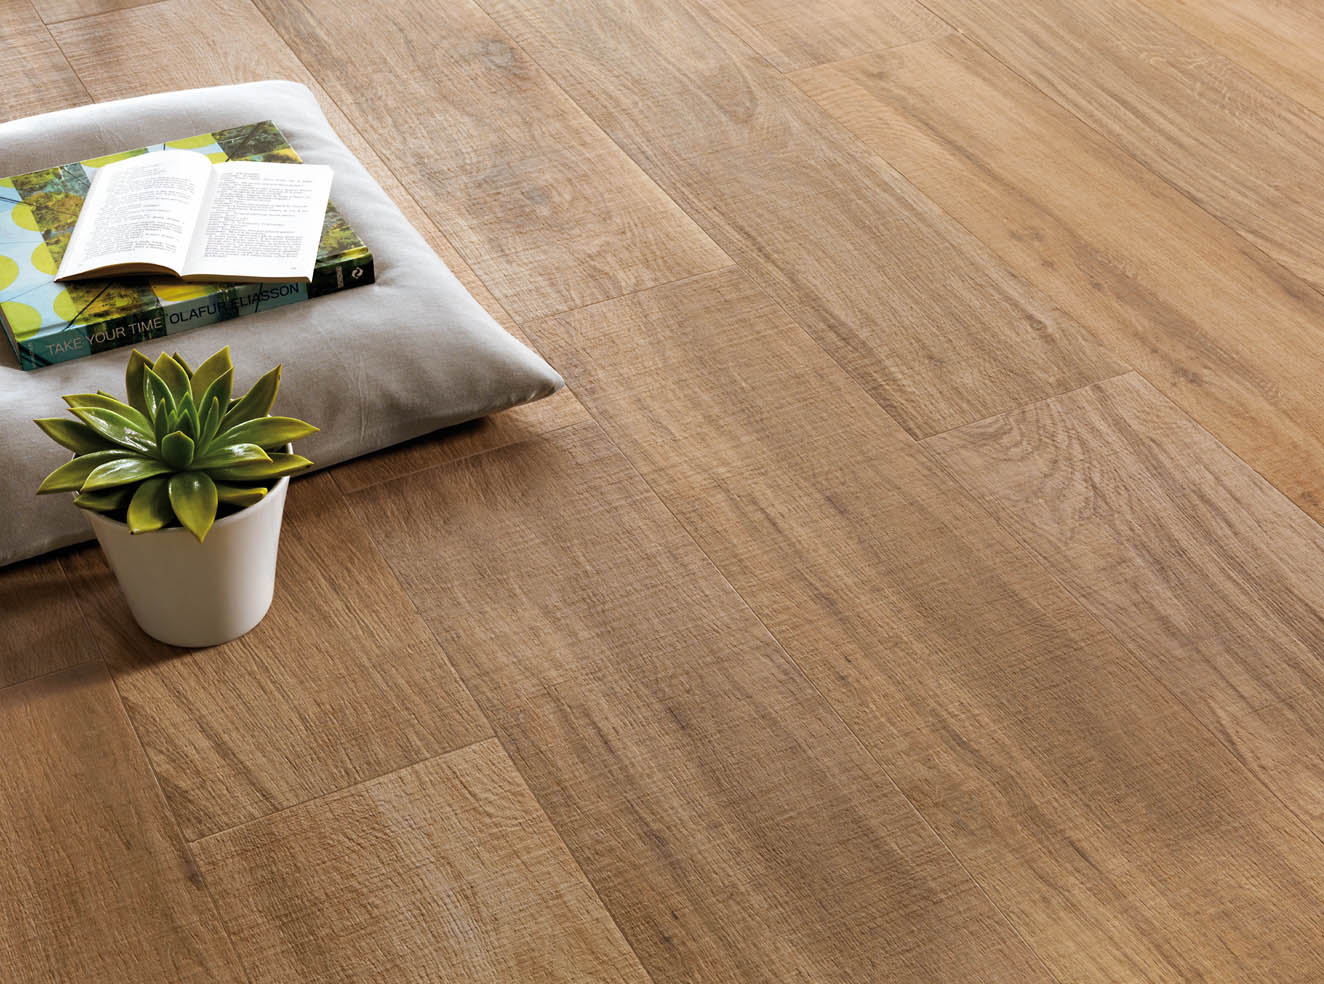 Carrelages ext imitations parquet bois duc carrelages for Carrelage en bois